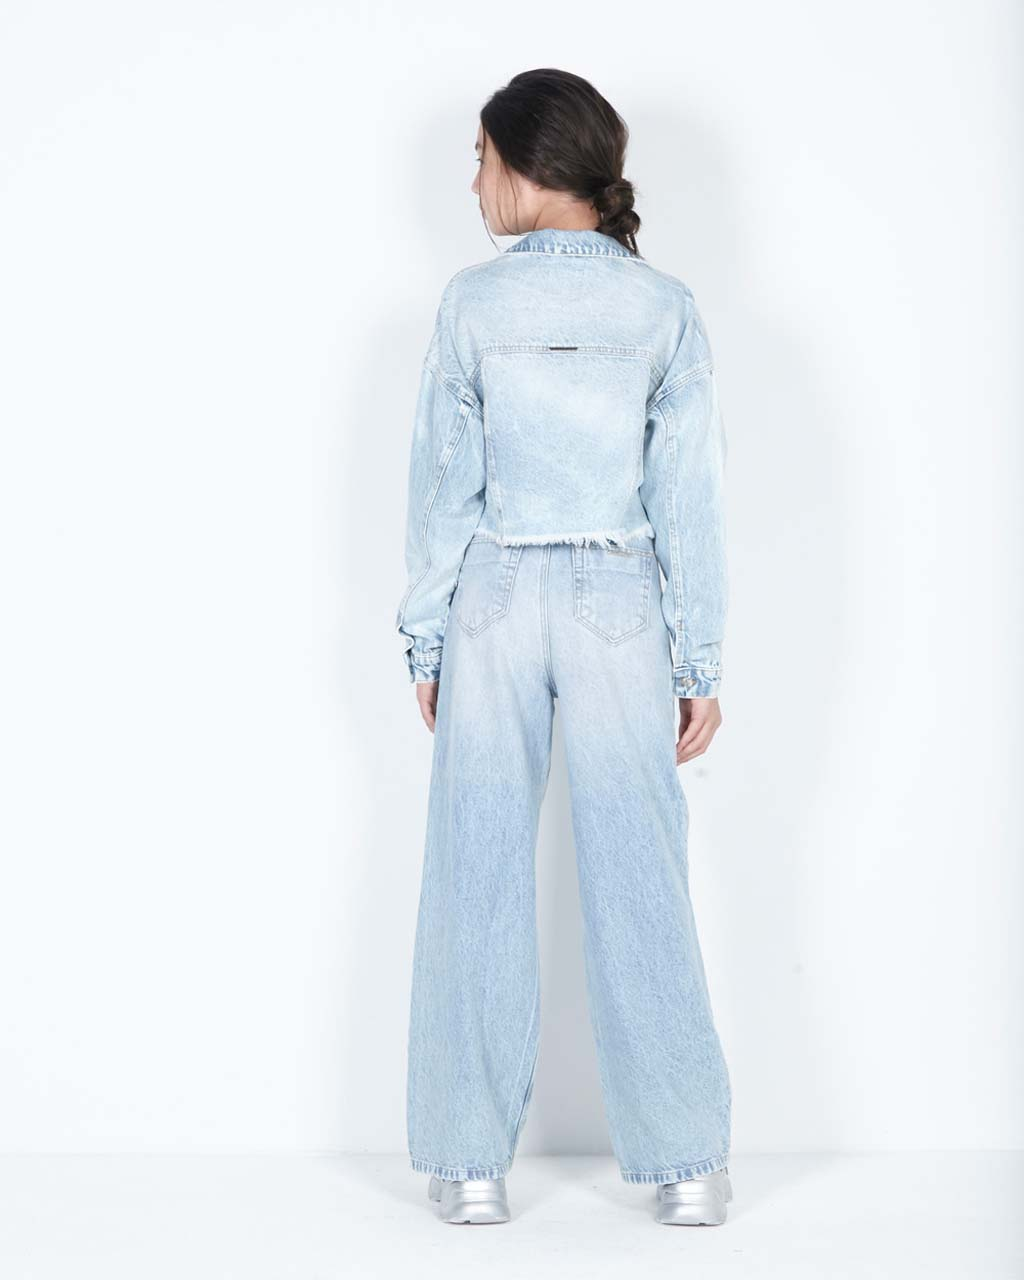 Jaqueta Teen Jeans Trucker Cropped Dimy Candy